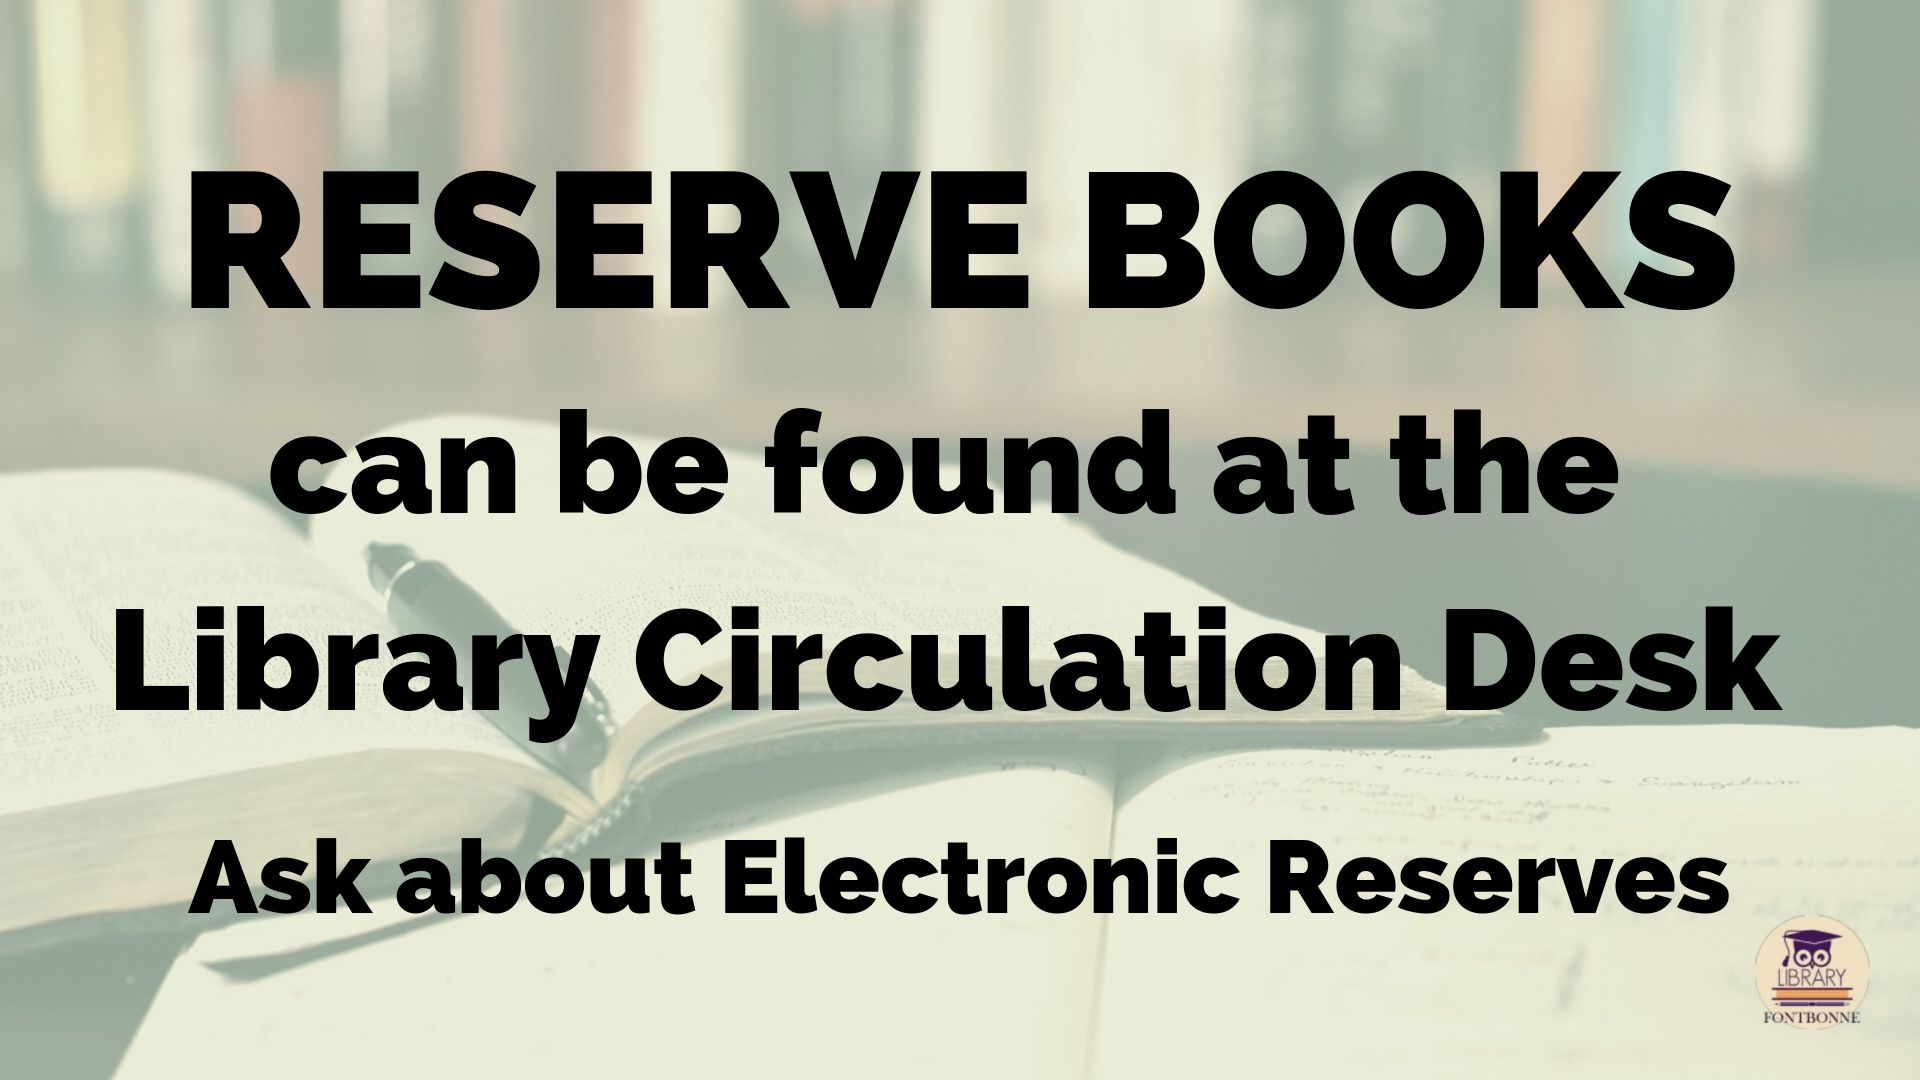 Reserves are available at the circulation desk. Ask about electronic reserves